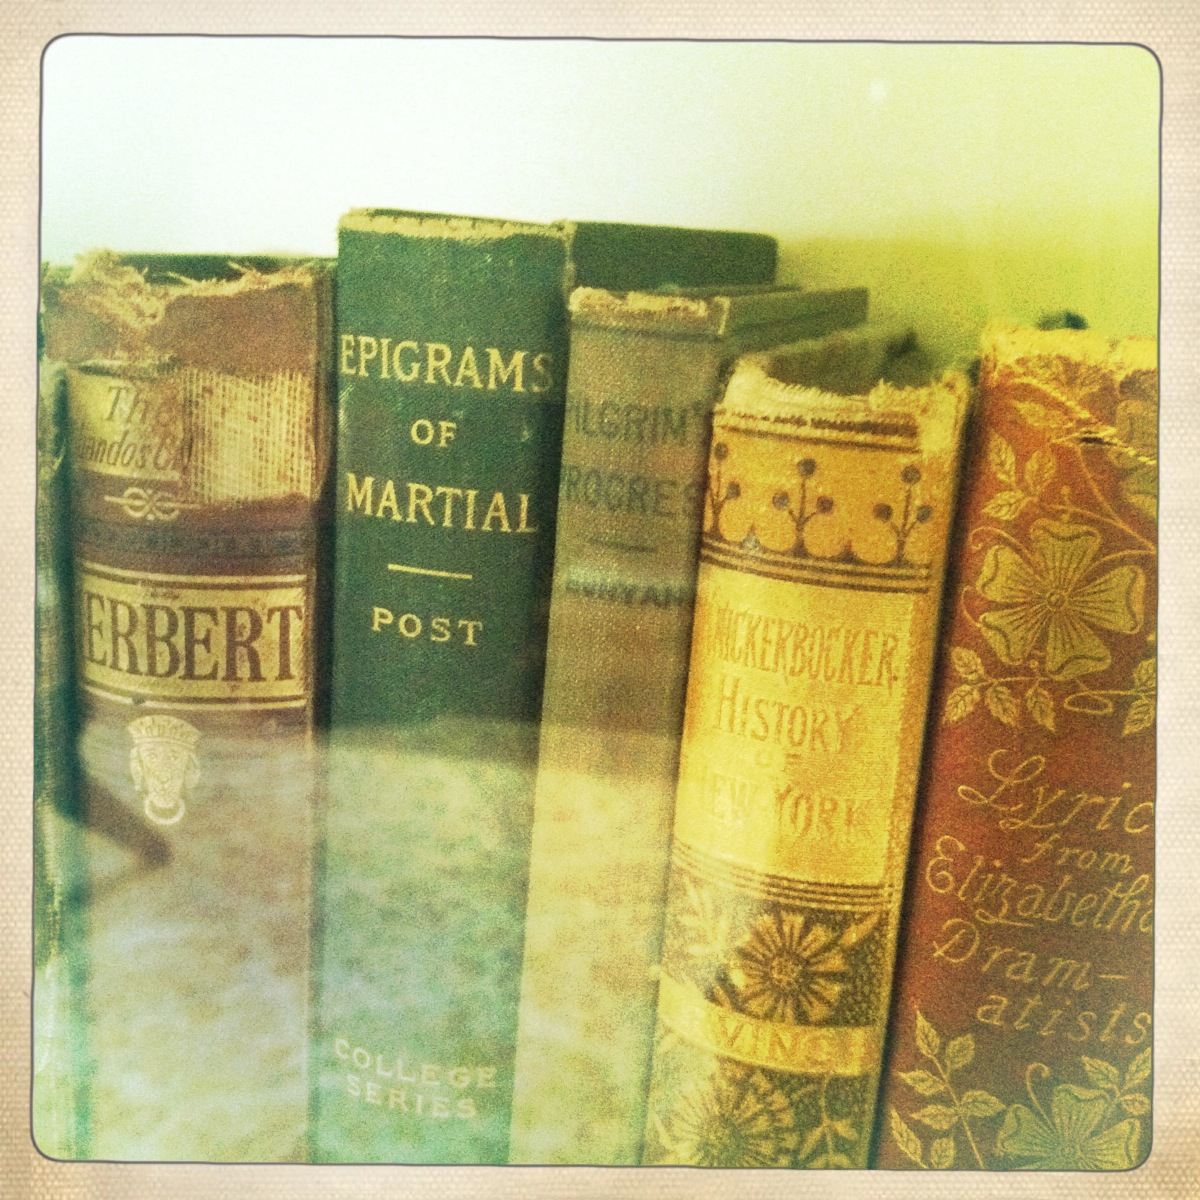 robert frost illustrated poetry books from the frost household somebody else liked epigrams too